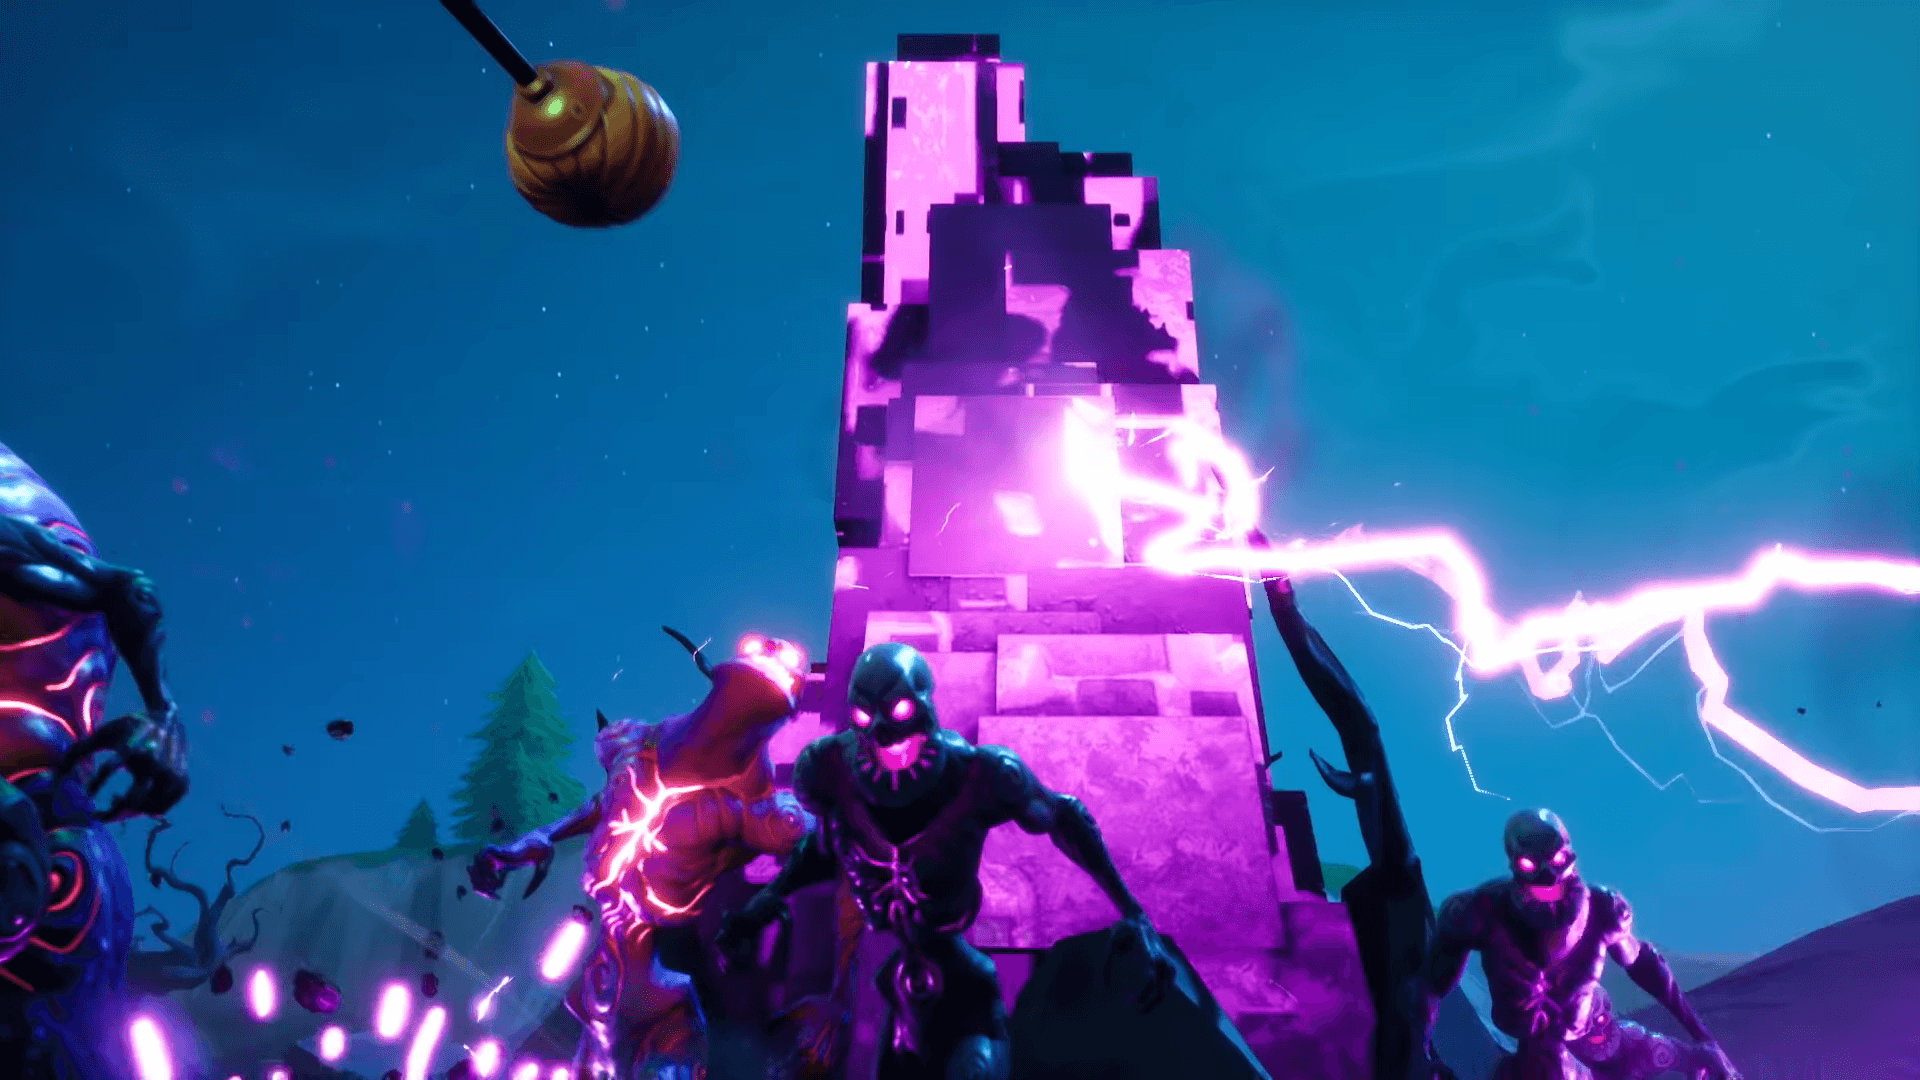 You can sneak past Cube Monsters on Fortnite: Battle Royale